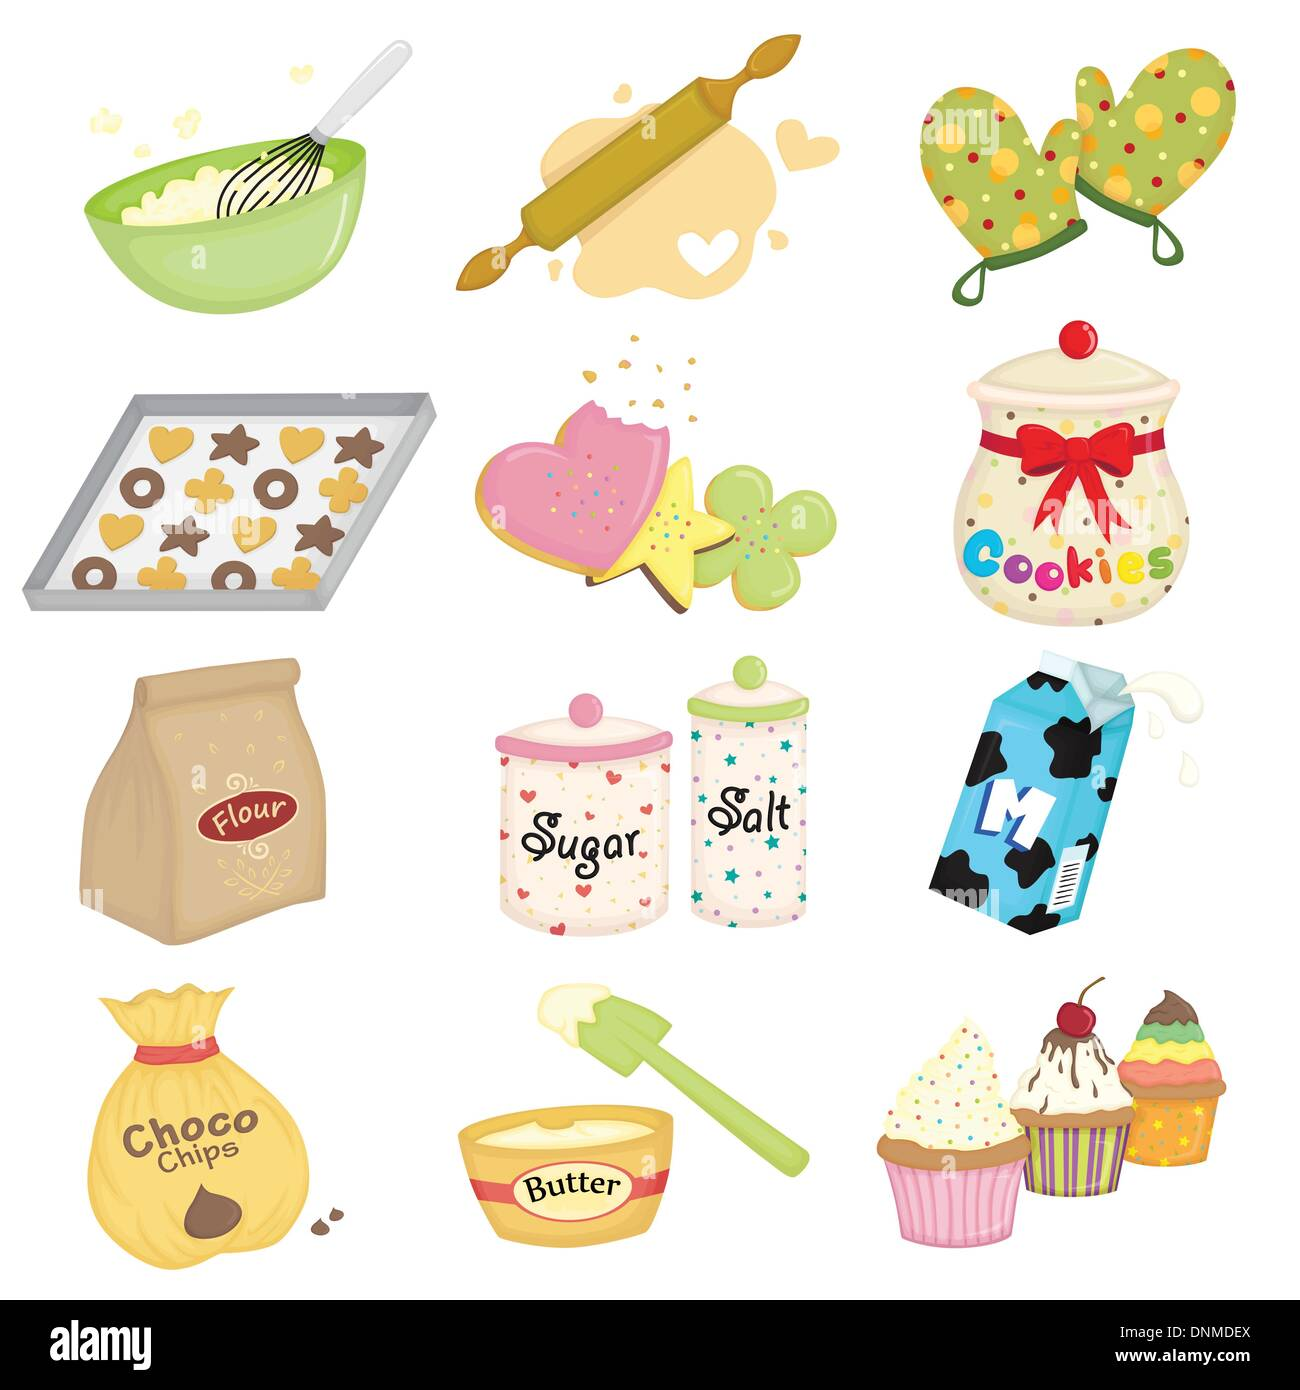 A vector illustration of baking and kitchen utensils icons - Stock Vector